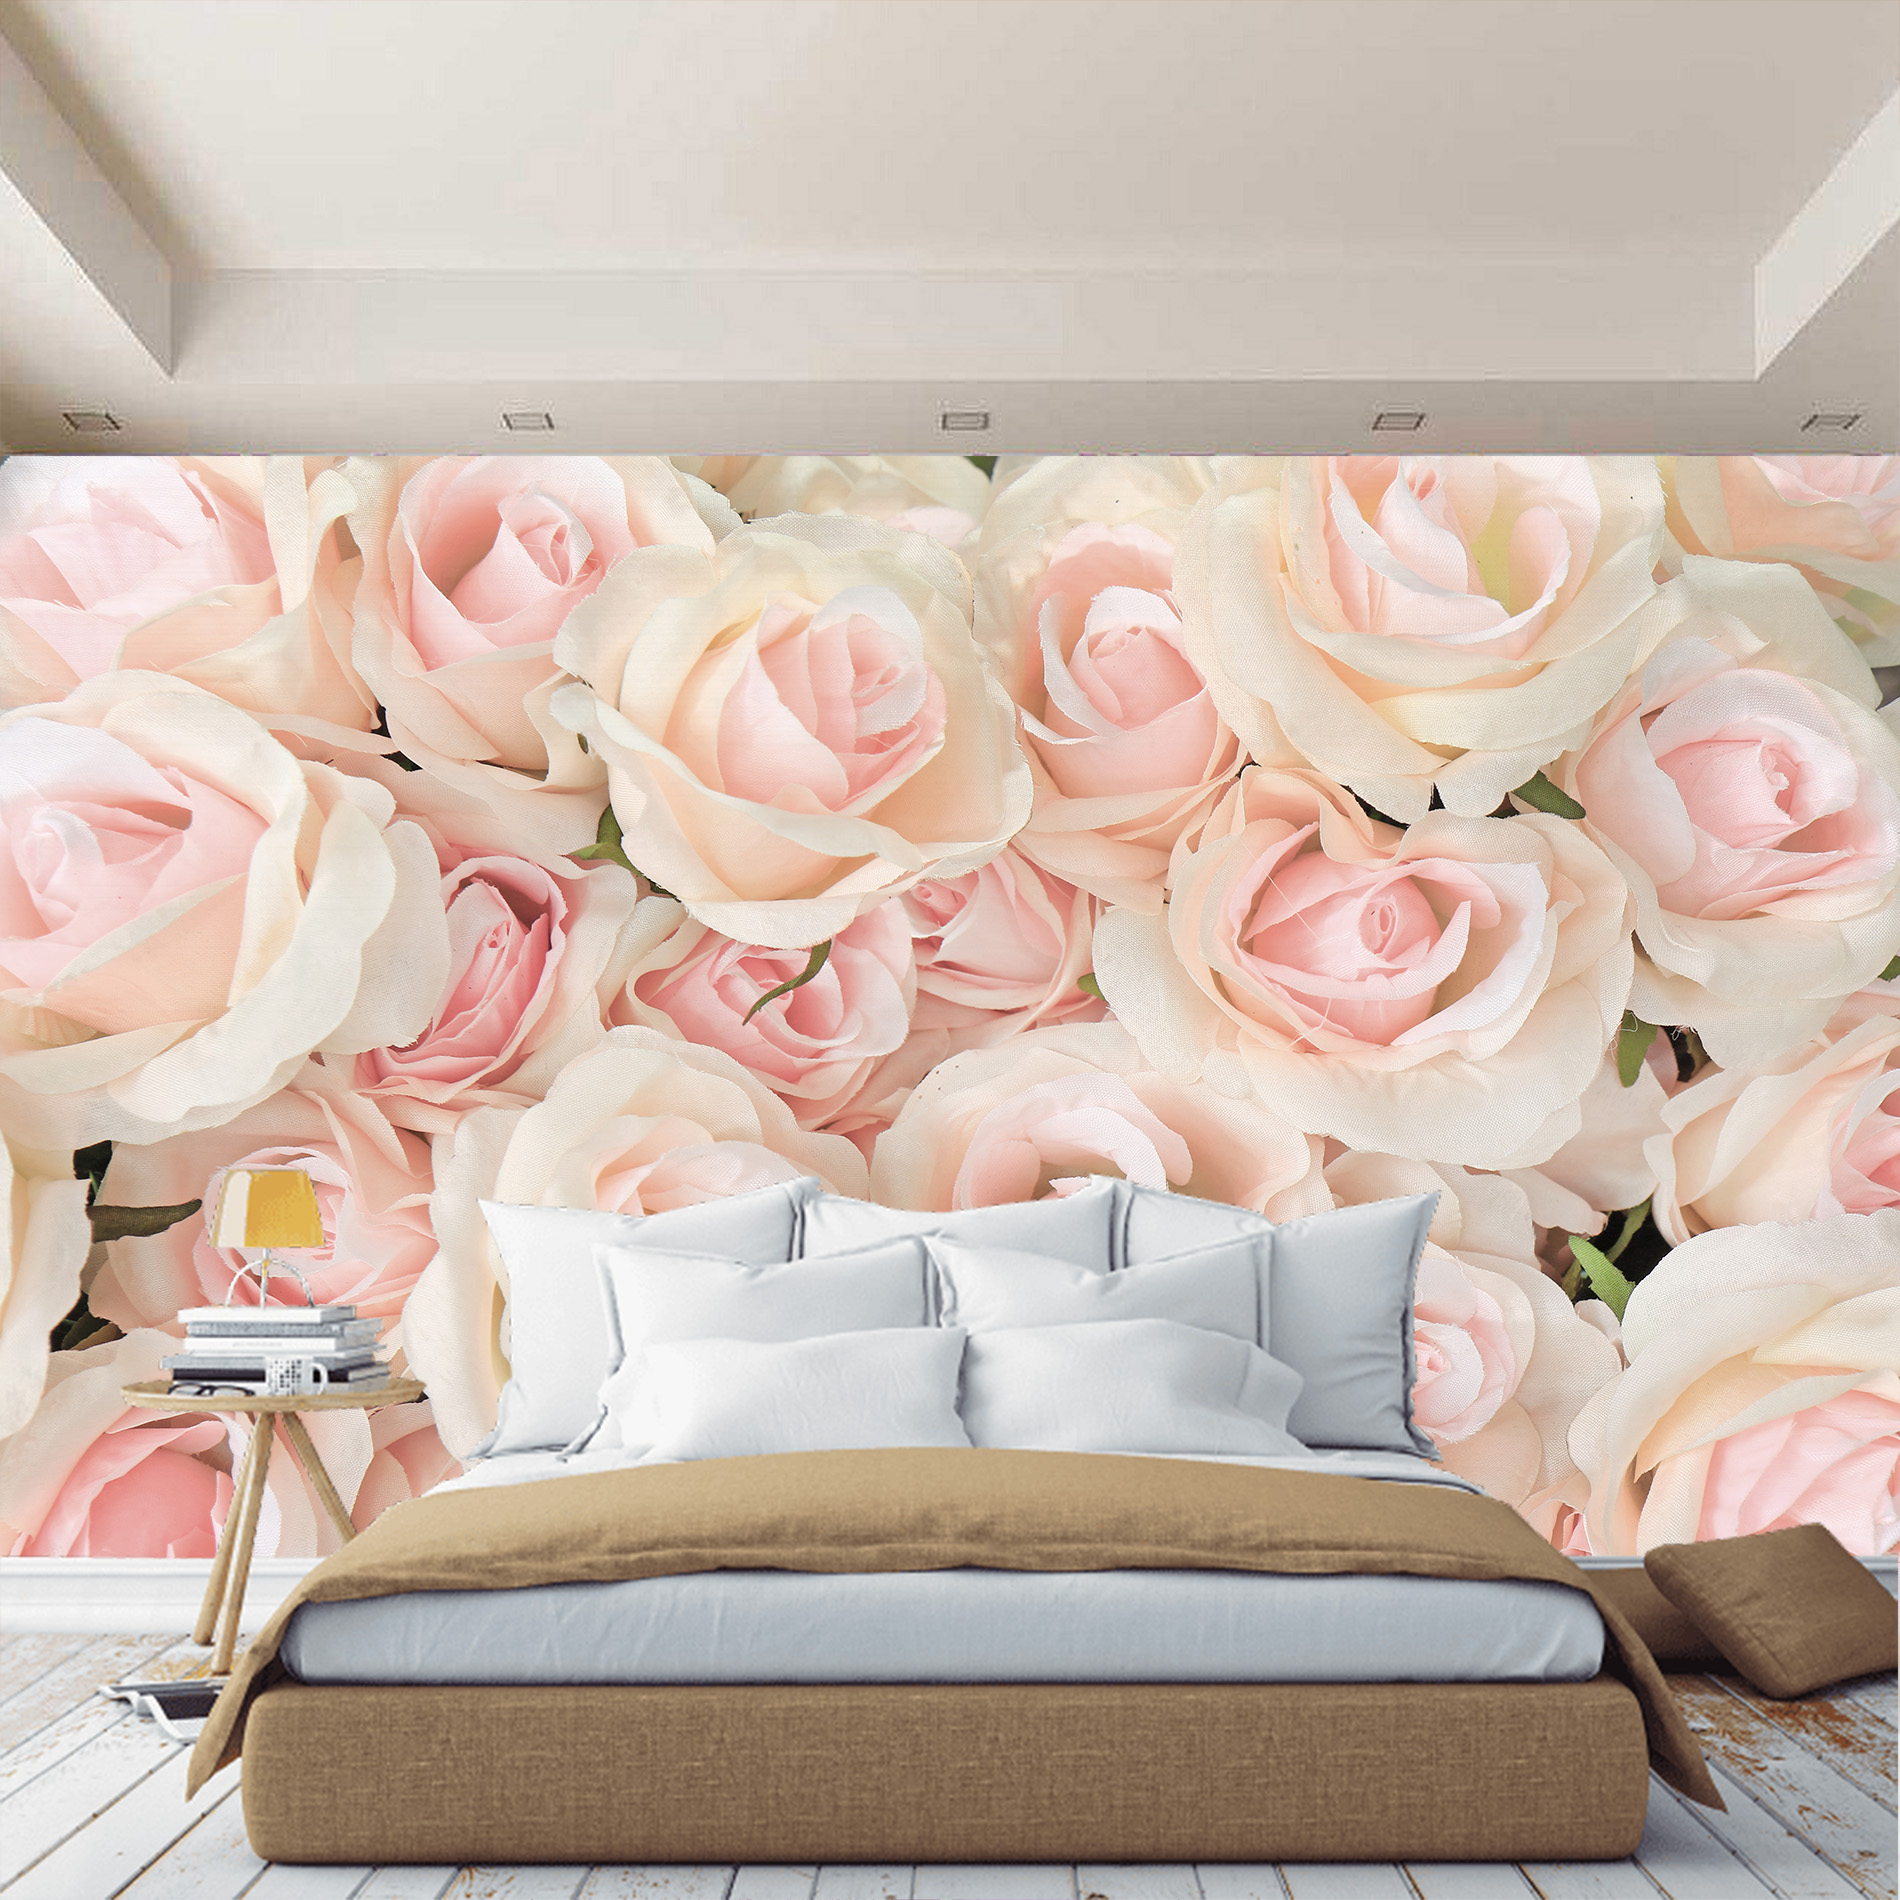 Wall Mural Roses Stereoscopic Flowers. 3D Wall Mural In Bedroom, Hall, In House.